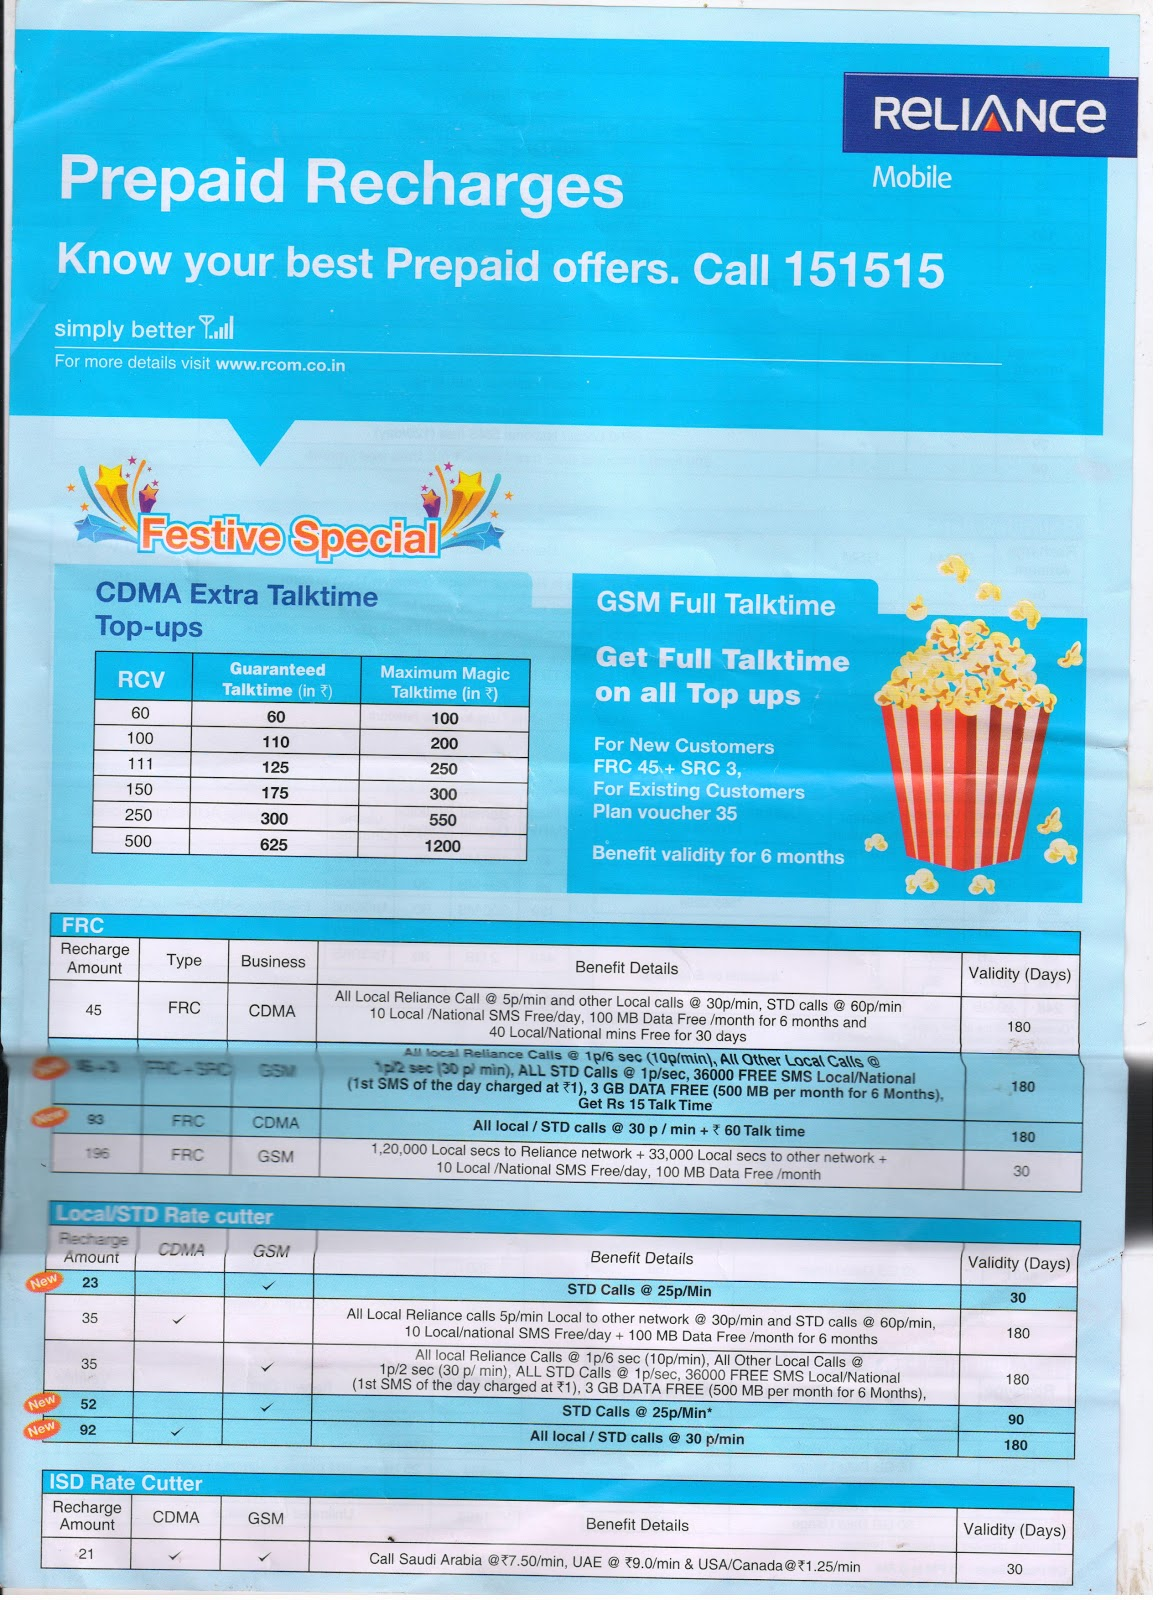 Free recharge coupons for reliance gsm